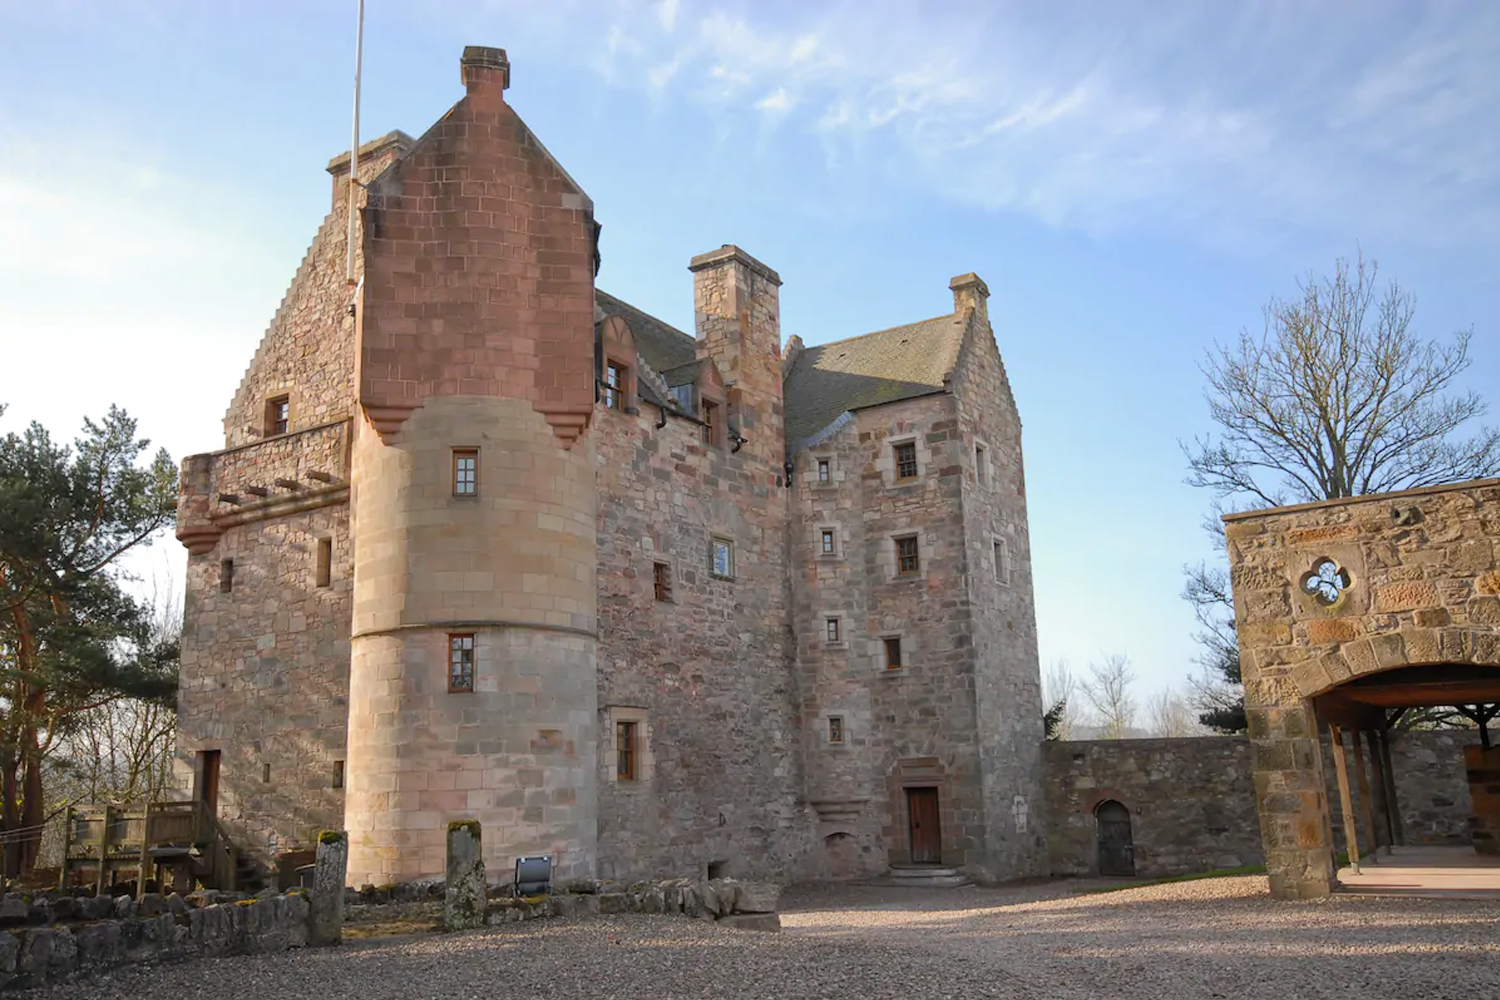 Dairsie is an independent historic castle located in Fife